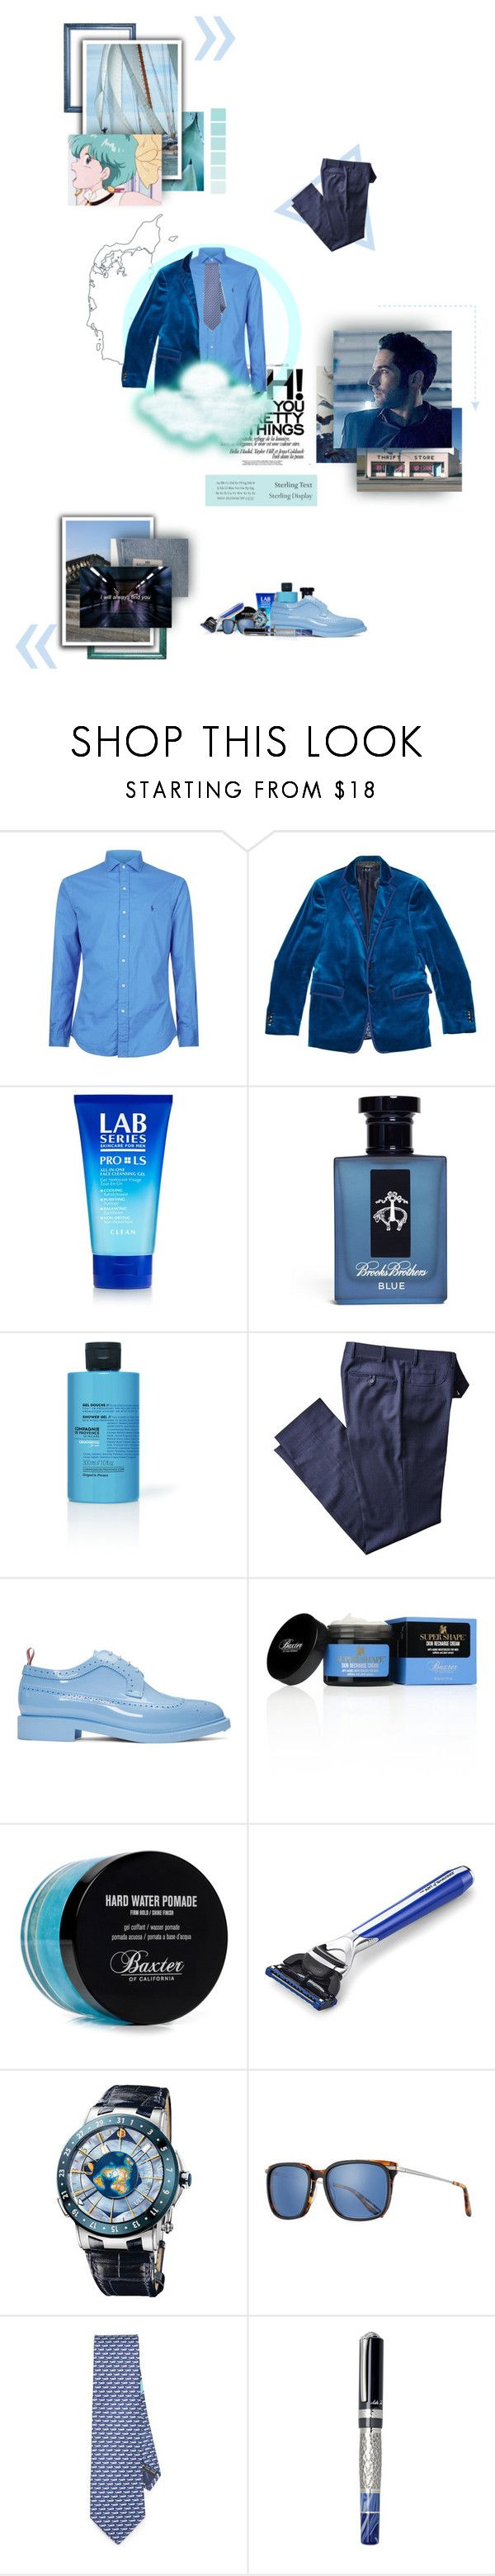 """""""Pace yourself for me I said maybe, baby, please But I just don't know now When all I want to do is try"""" by aspera-ad-inferi ❤ liked on Polyvore featuring Zephyr, Polo Ralph Lauren, Etro, Lab Series, Tiffany & Co., Brooks Brothers, La Compagnie de Provence, Thom Browne, Baxter of California and The Art of Shaving"""